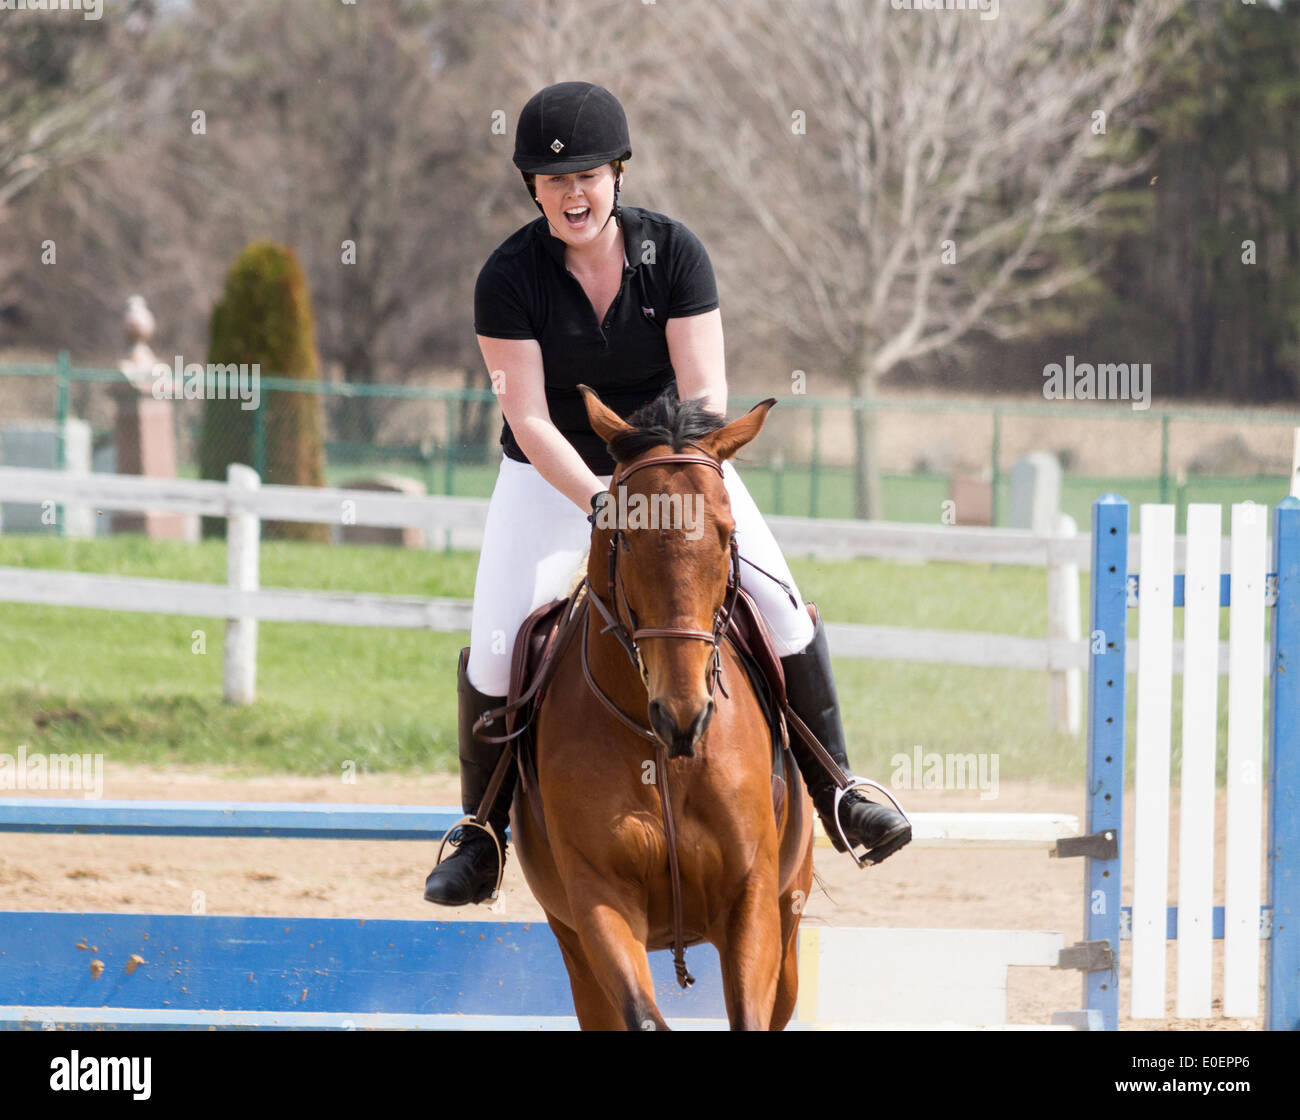 woman-riding-bay-horse-over-jump-at-local-schooling-horse-show-E0EPP6.jpg